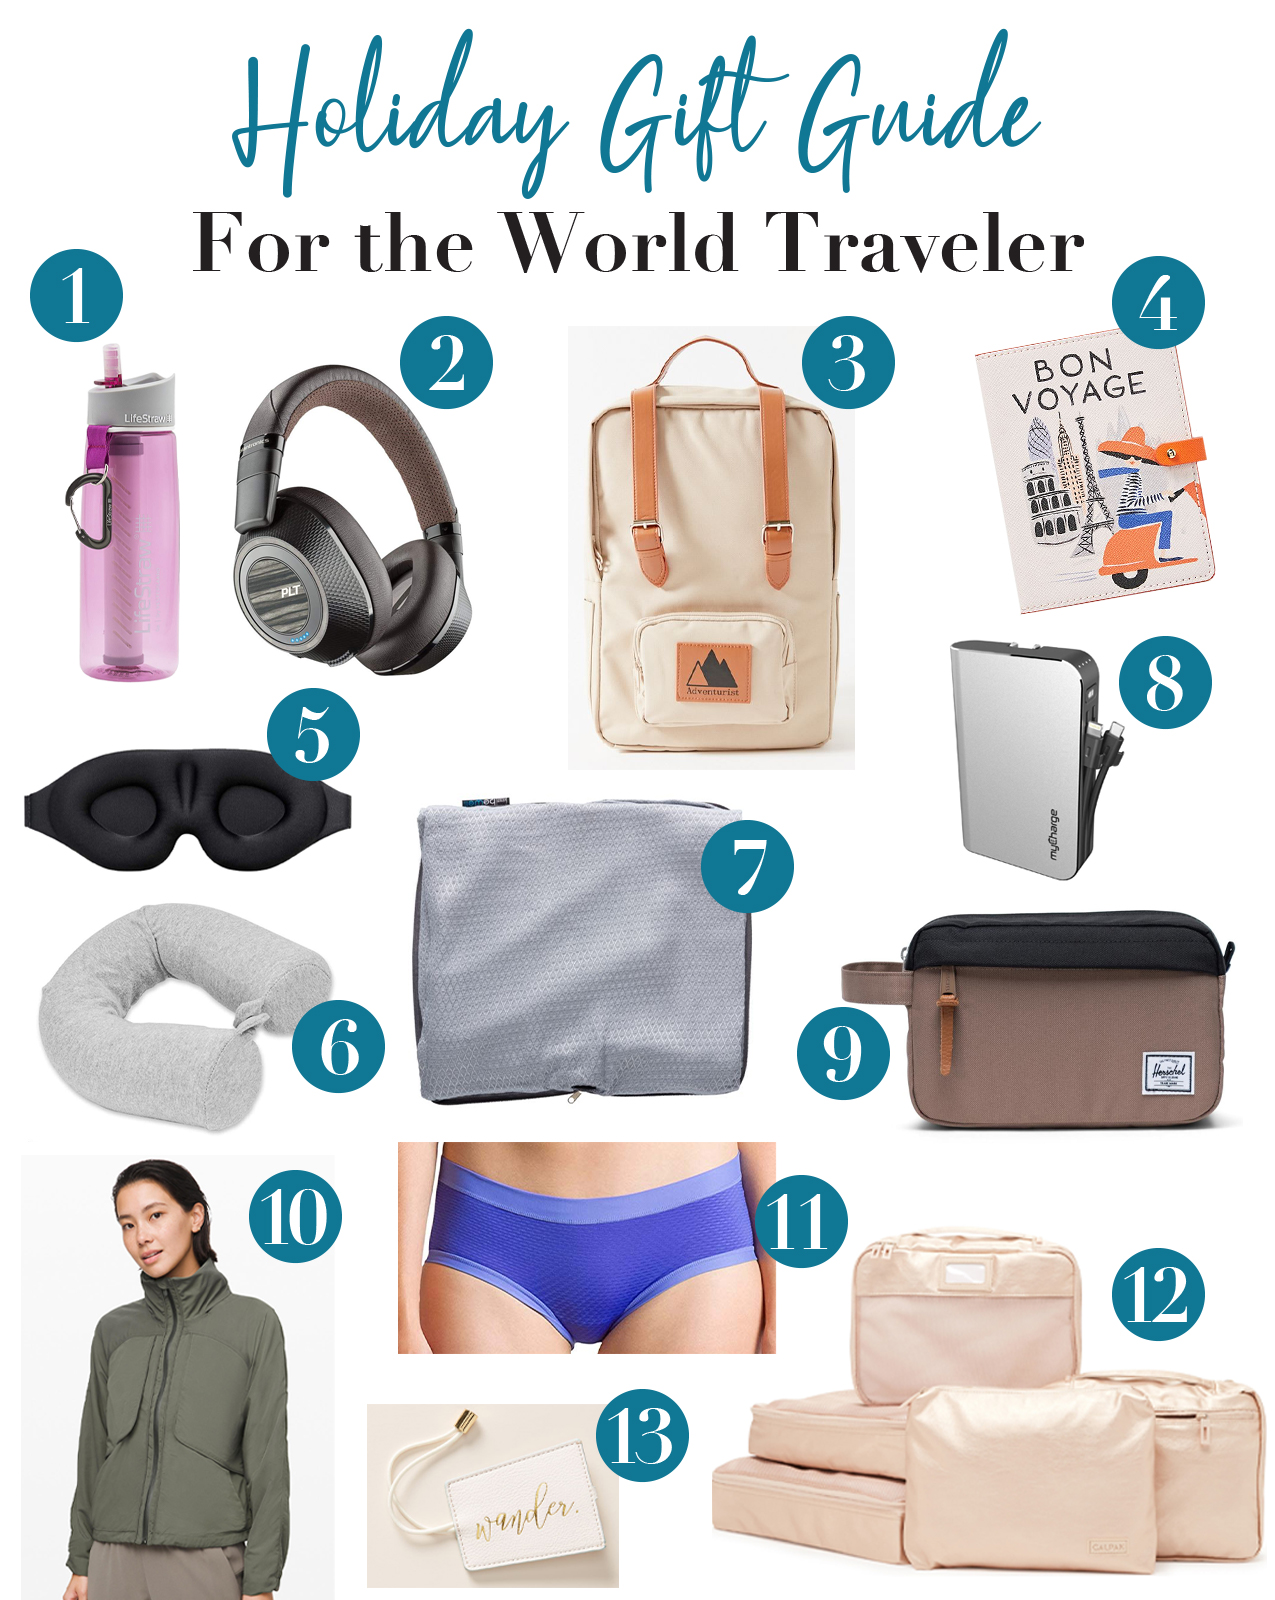 2019 Holiday Gift Guide for the World Traveler